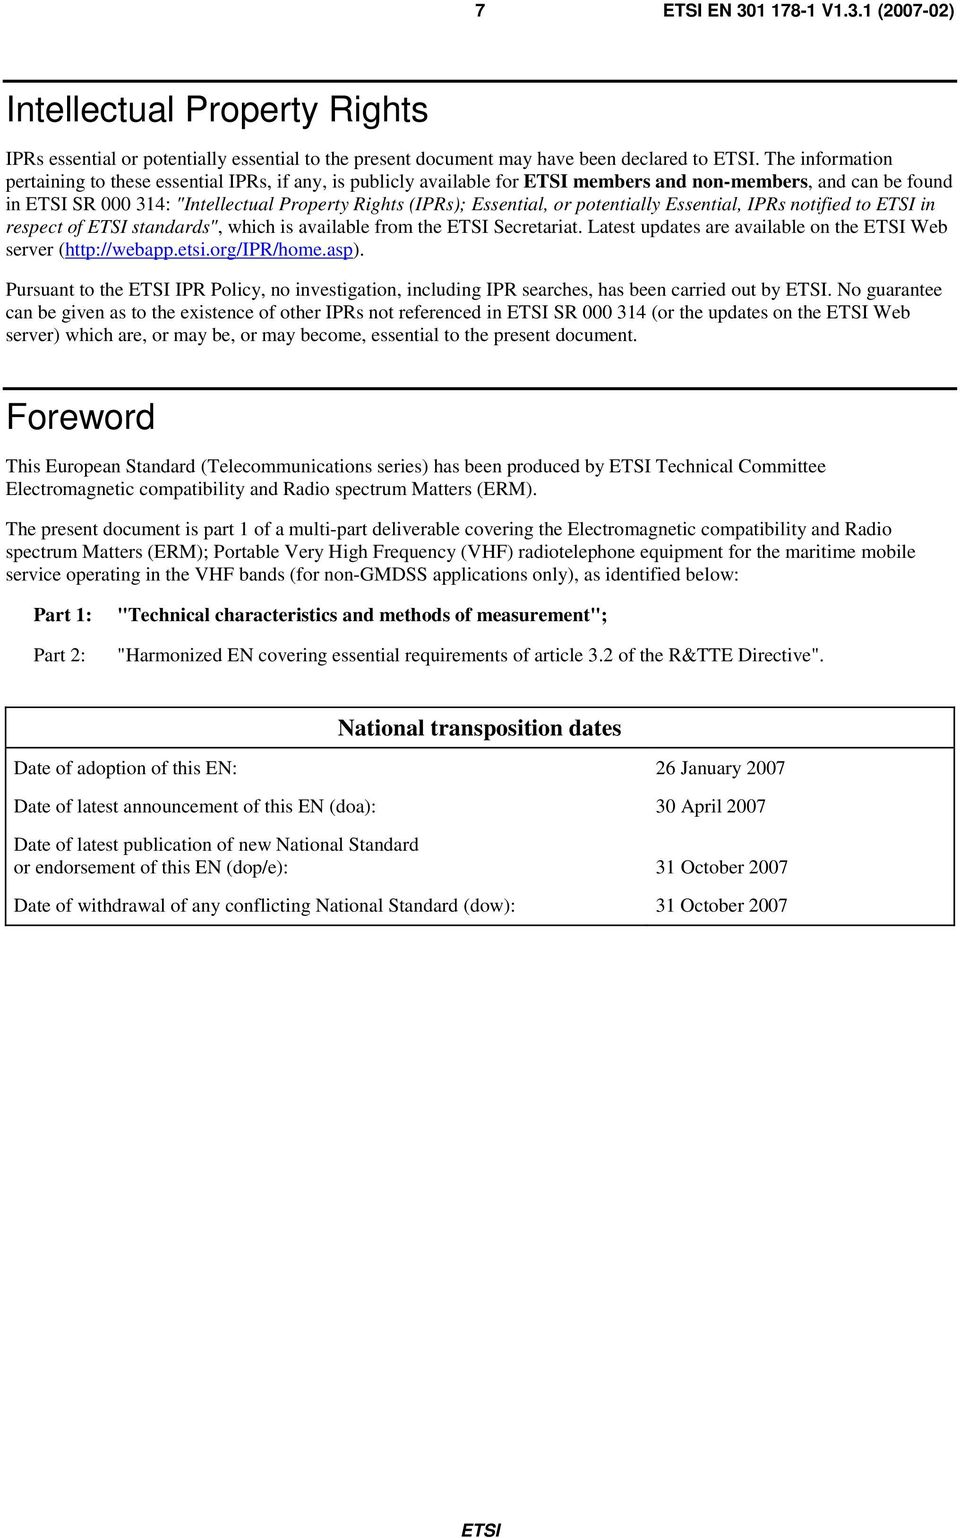 "potentially Essential, IPRs notified to in respect of standards"", which is available from the Secretariat. Latest updates are available on the Web server (http://webapp.etsi.org/ipr/home.asp)."